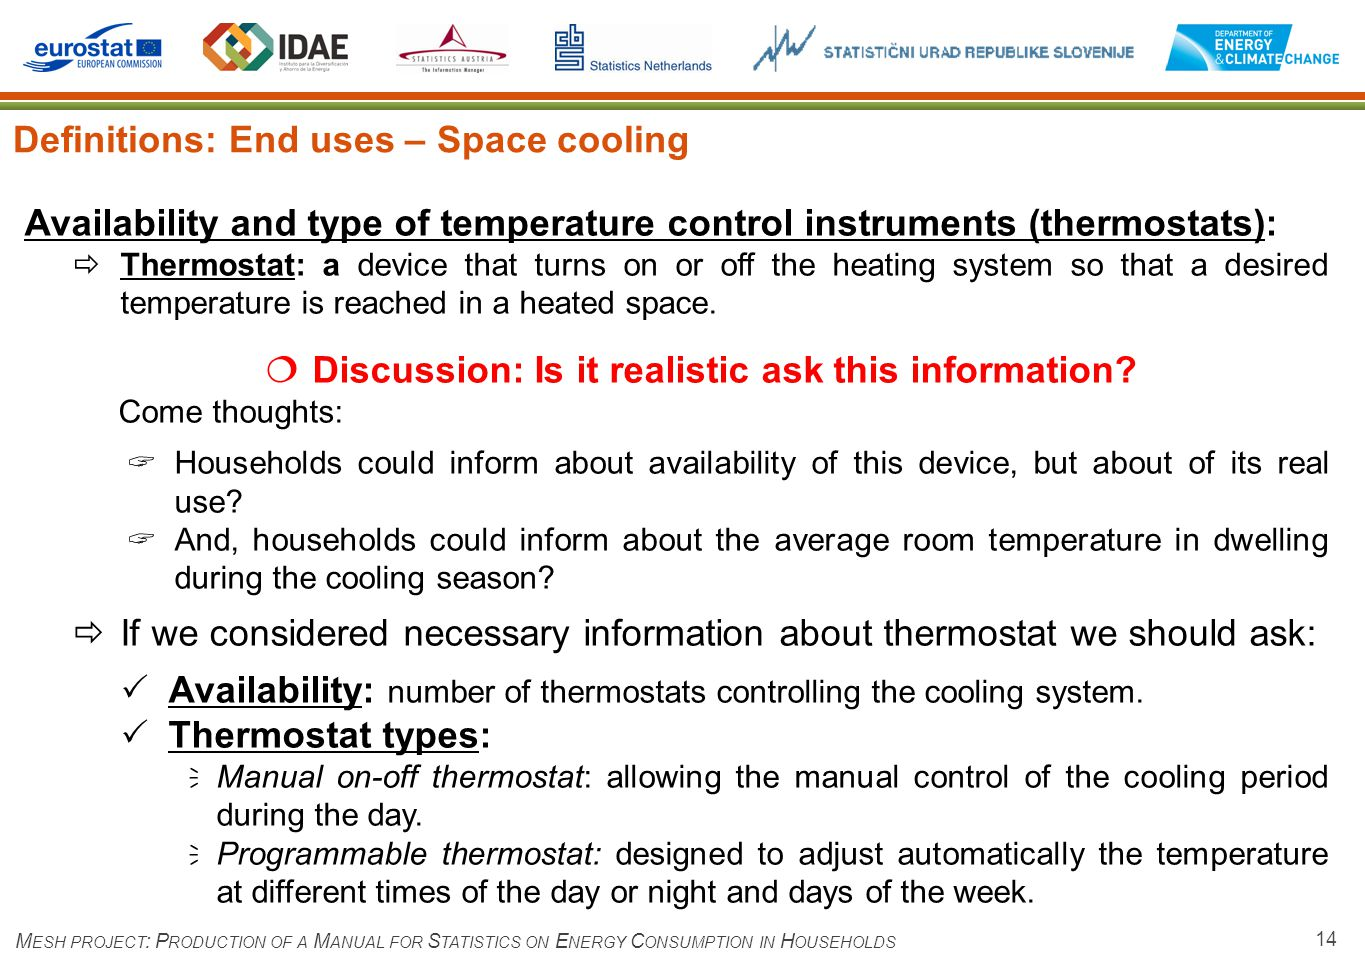 14 Definitions: End uses – Space cooling M ESH PROJECT : P RODUCTION OF A M ANUAL FOR S TATISTICS ON E NERGY C ONSUMPTION IN H OUSEHOLDS Availability and type of temperature control instruments (thermostats): Thermostat: a device that turns on or off the heating system so that a desired temperature is reached in a heated space.